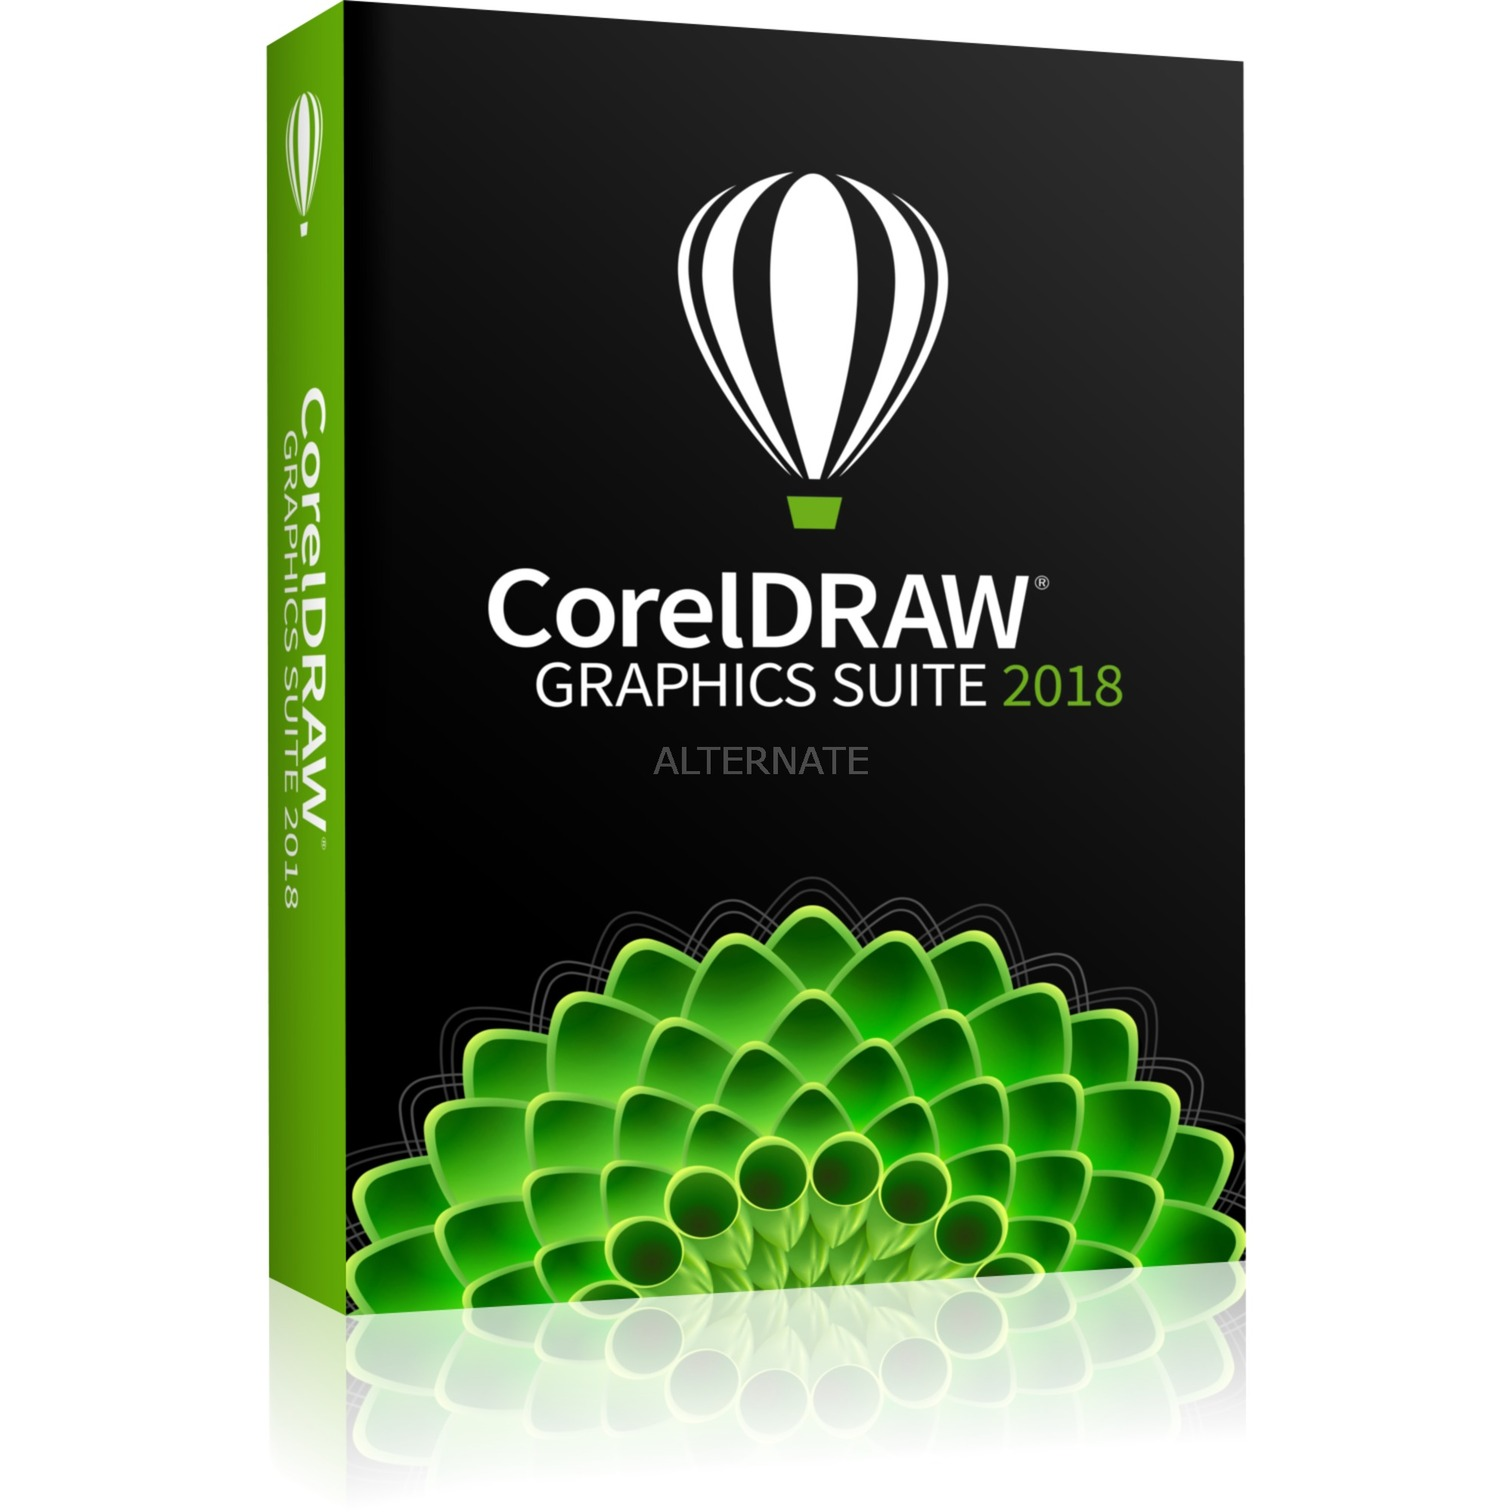 CorelDRAW Graphics Suite 2018, Software